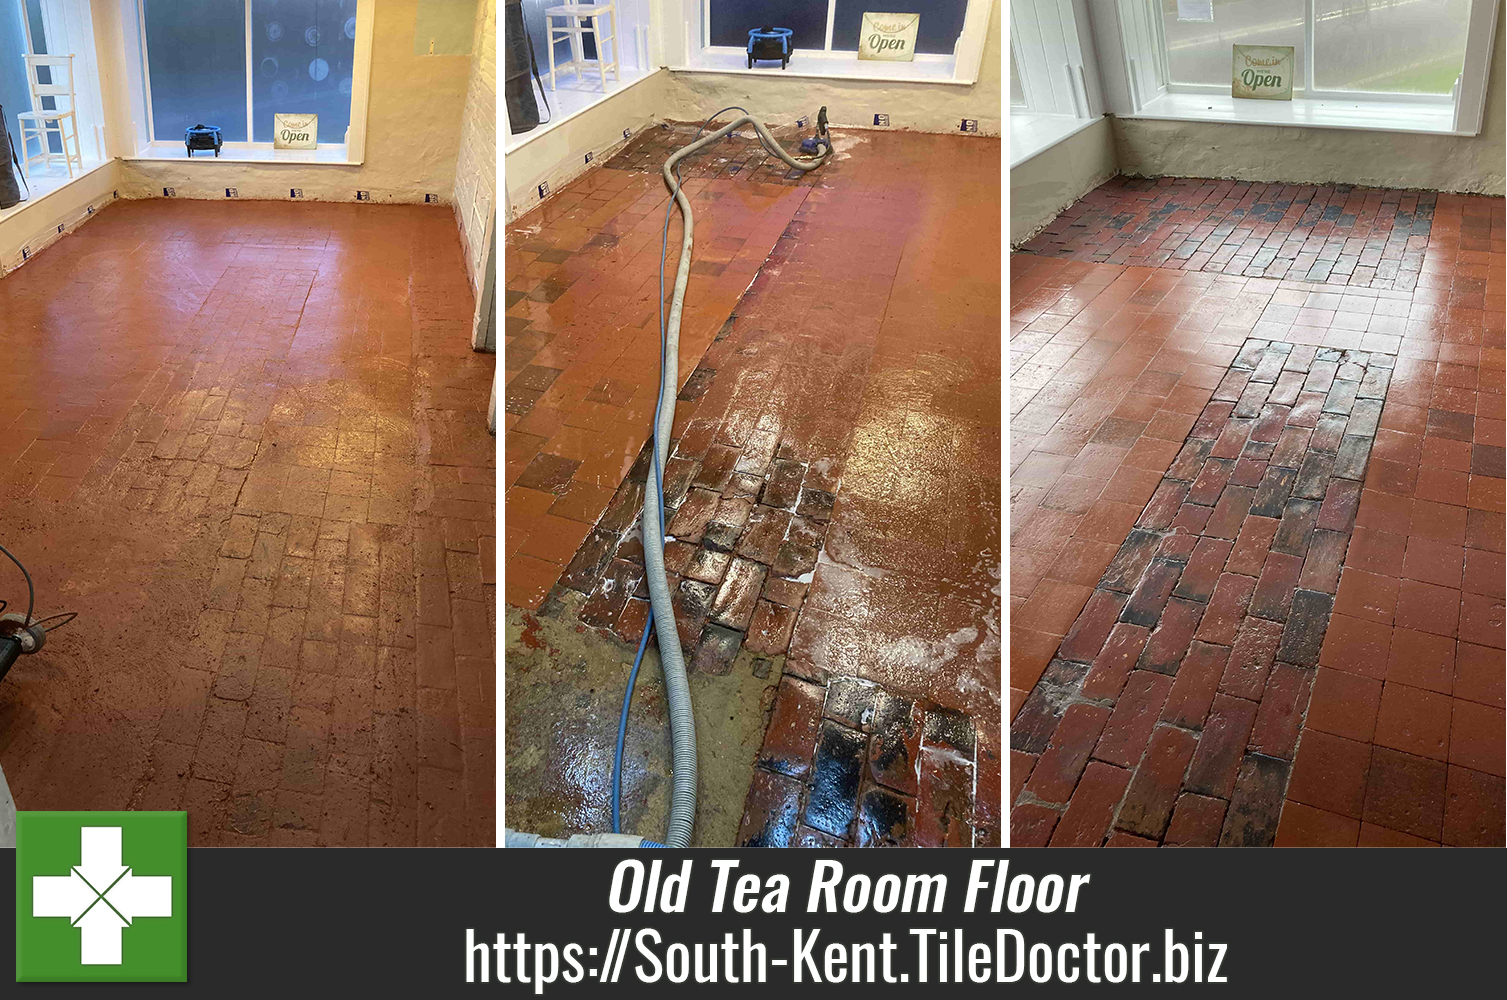 Brick-Quarry-Tea-Room-Floor-Renovation-Royal-Tunbridge-Wells-Kent